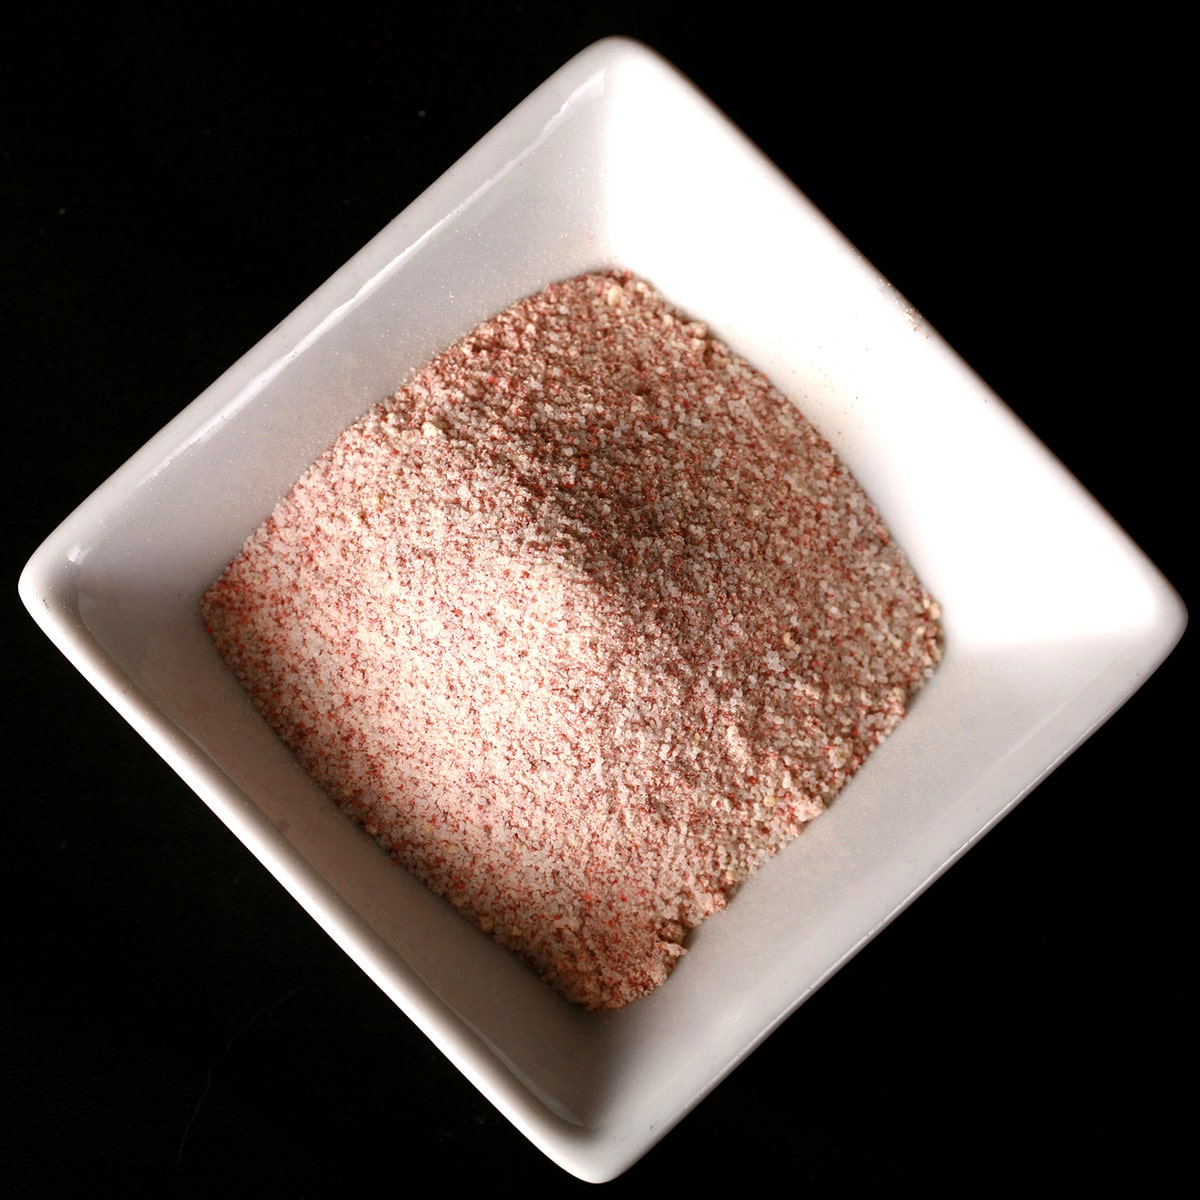 A small, square shaped white bowl with a pinkish seasoning salt mixture in it.